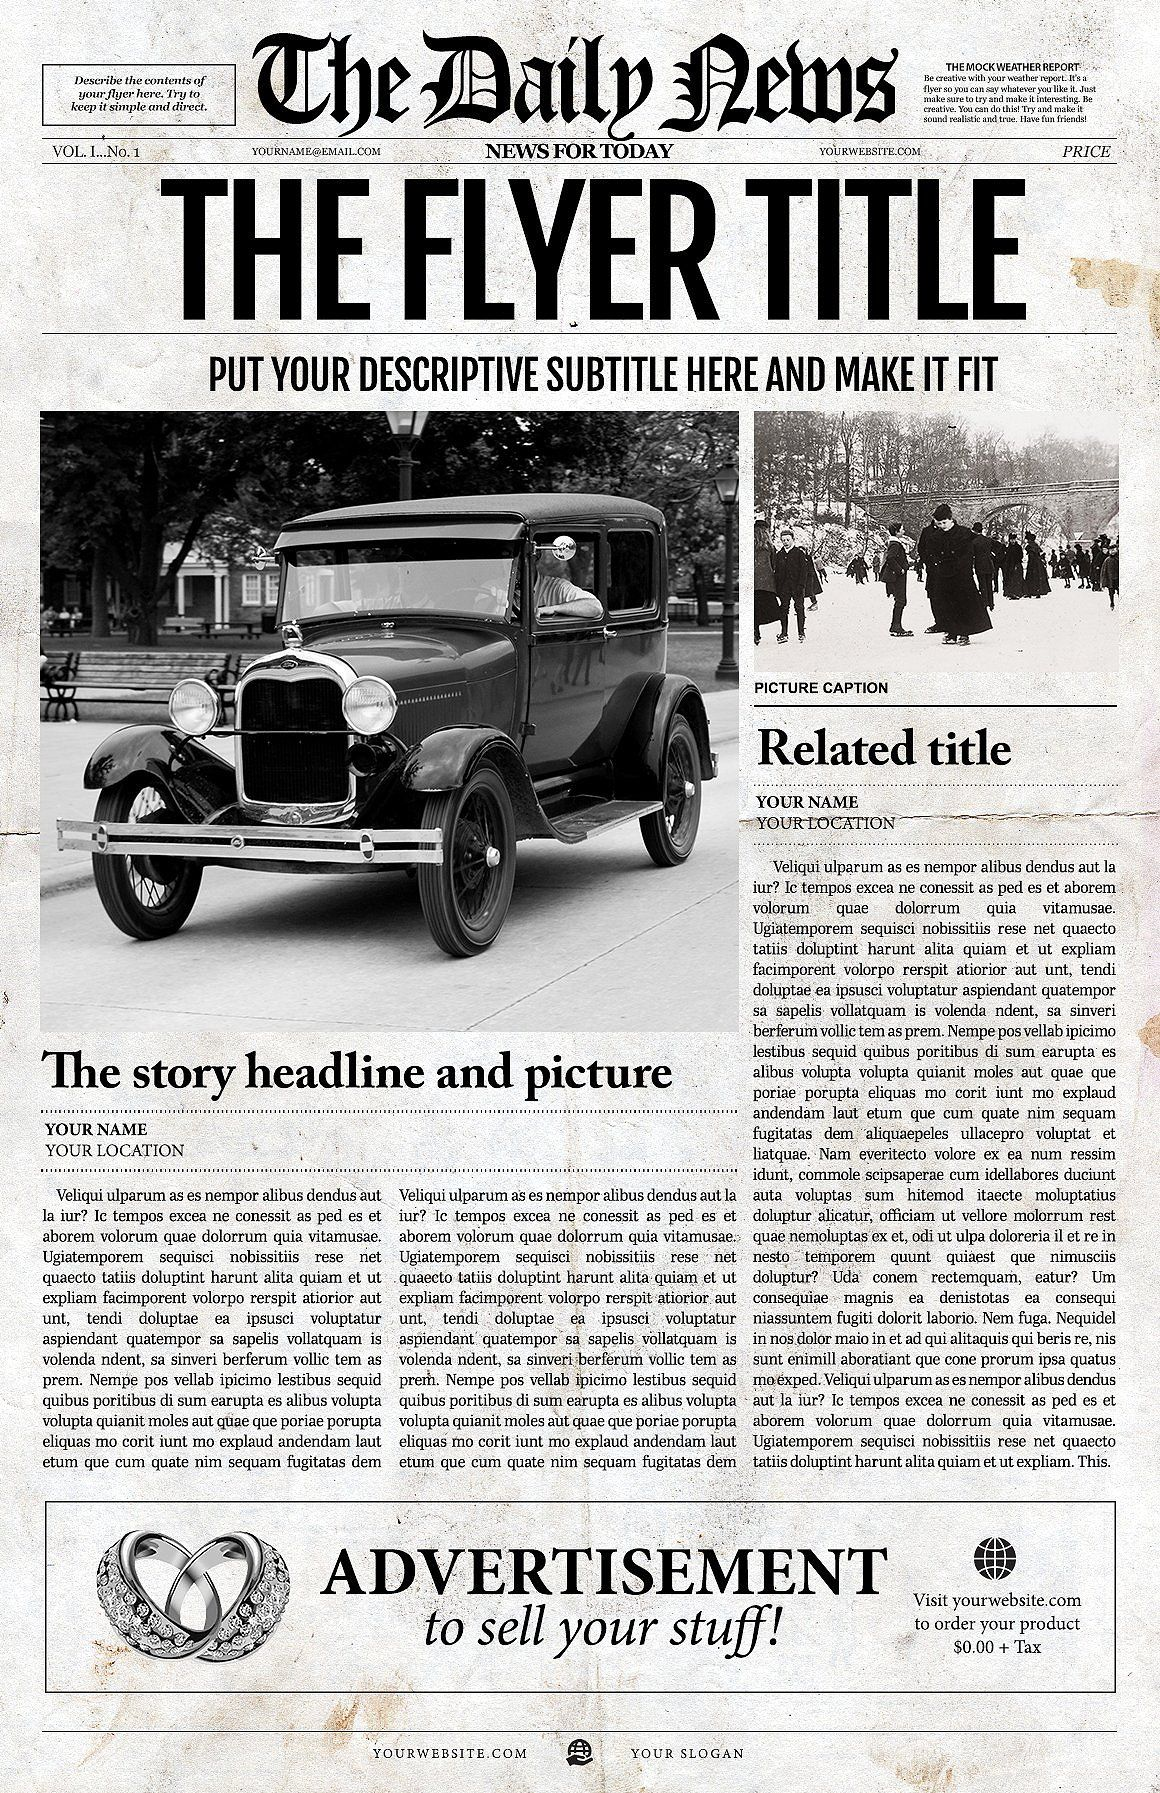 5 newspaper style templates bundle by newspaper templates on creativemarket